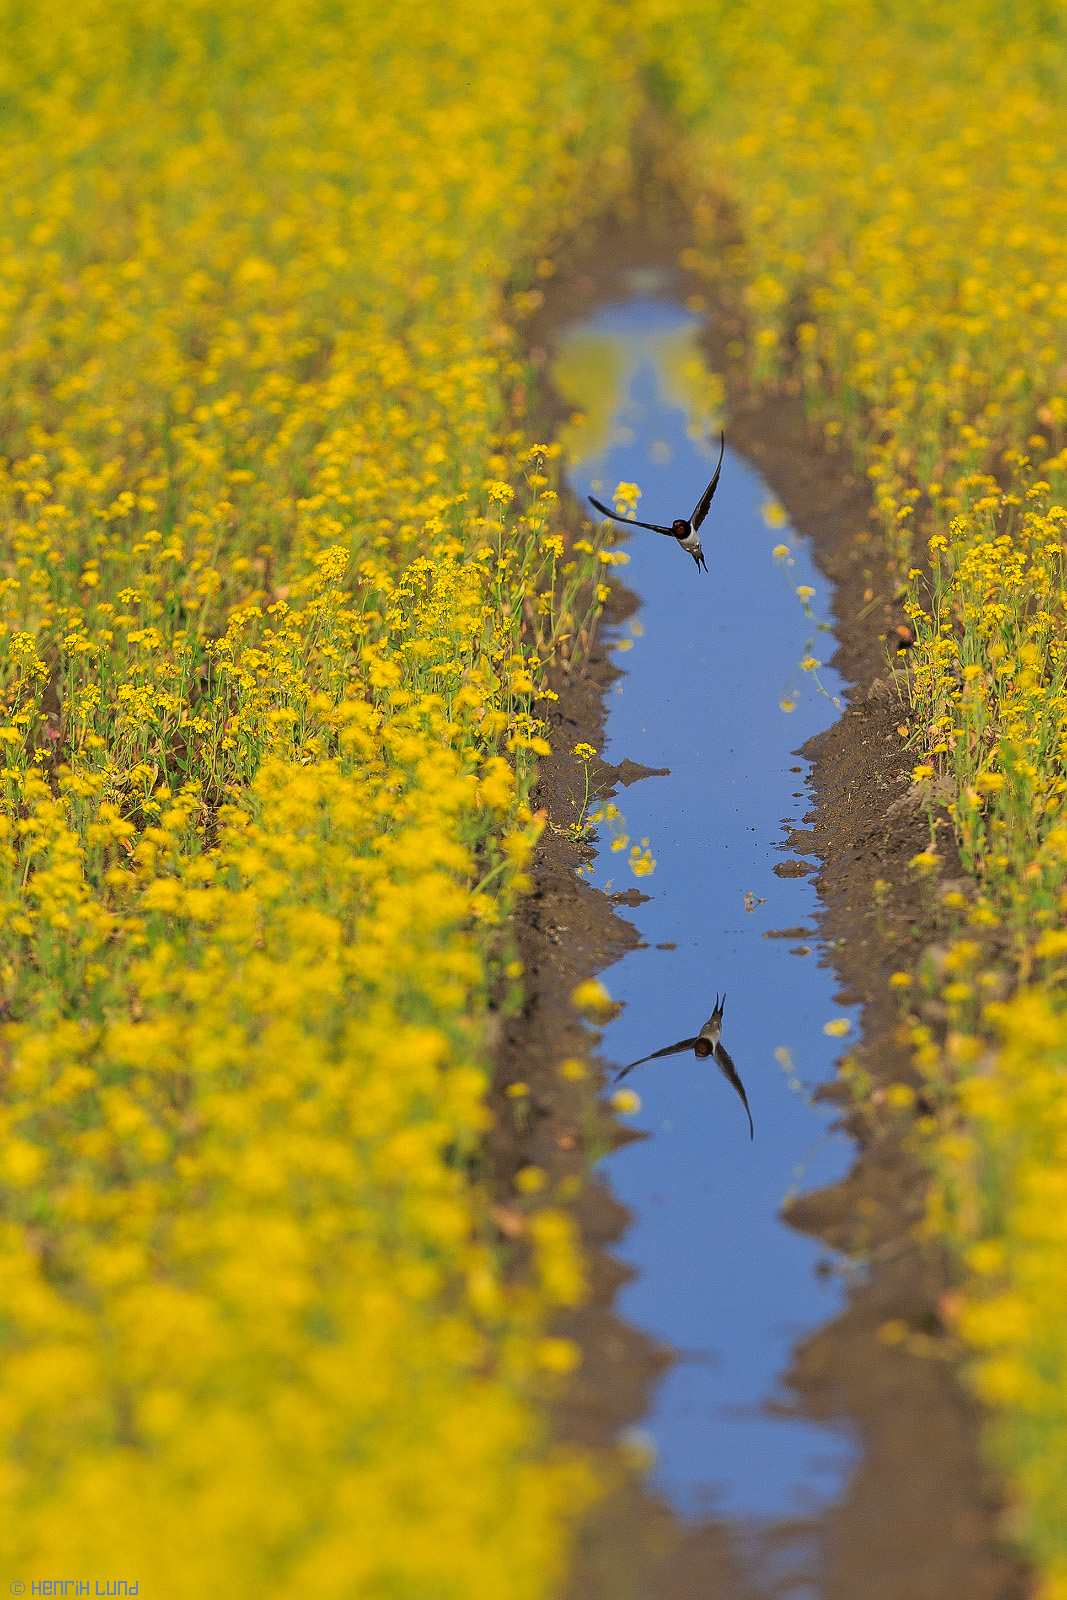 A barn swallow taking lifting after a dive into a waterhole in the rapeseed-field. Lovisa, Finland, July, 2014.